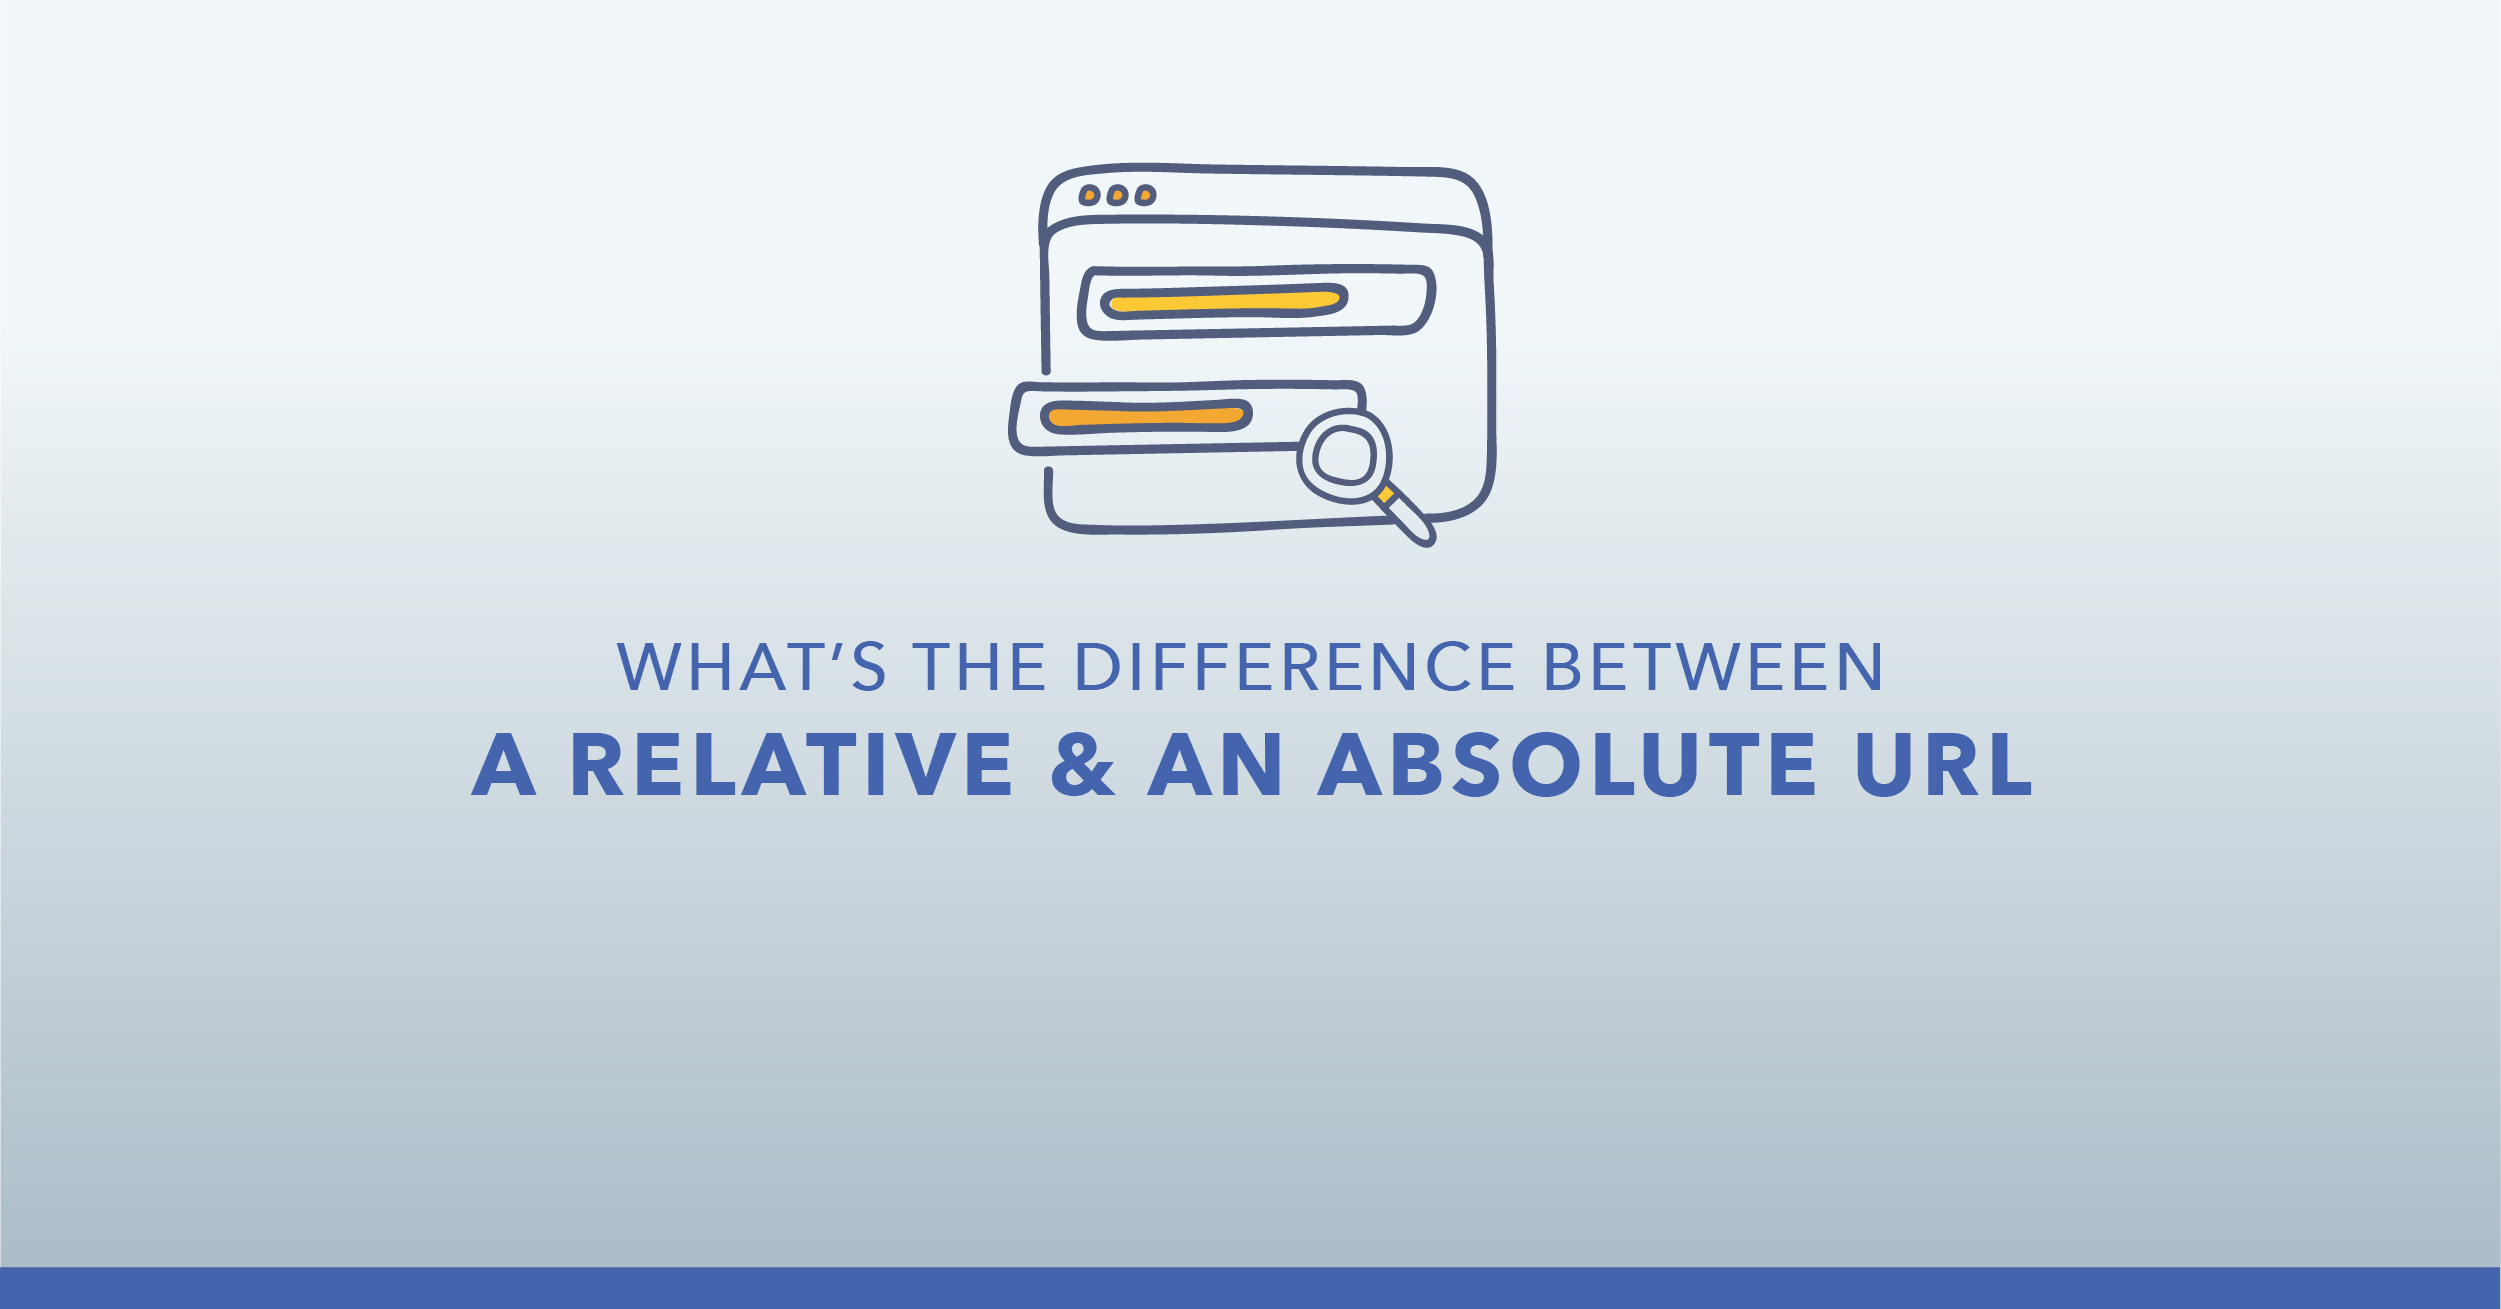 What is the difference between a relative and an absolute URL?